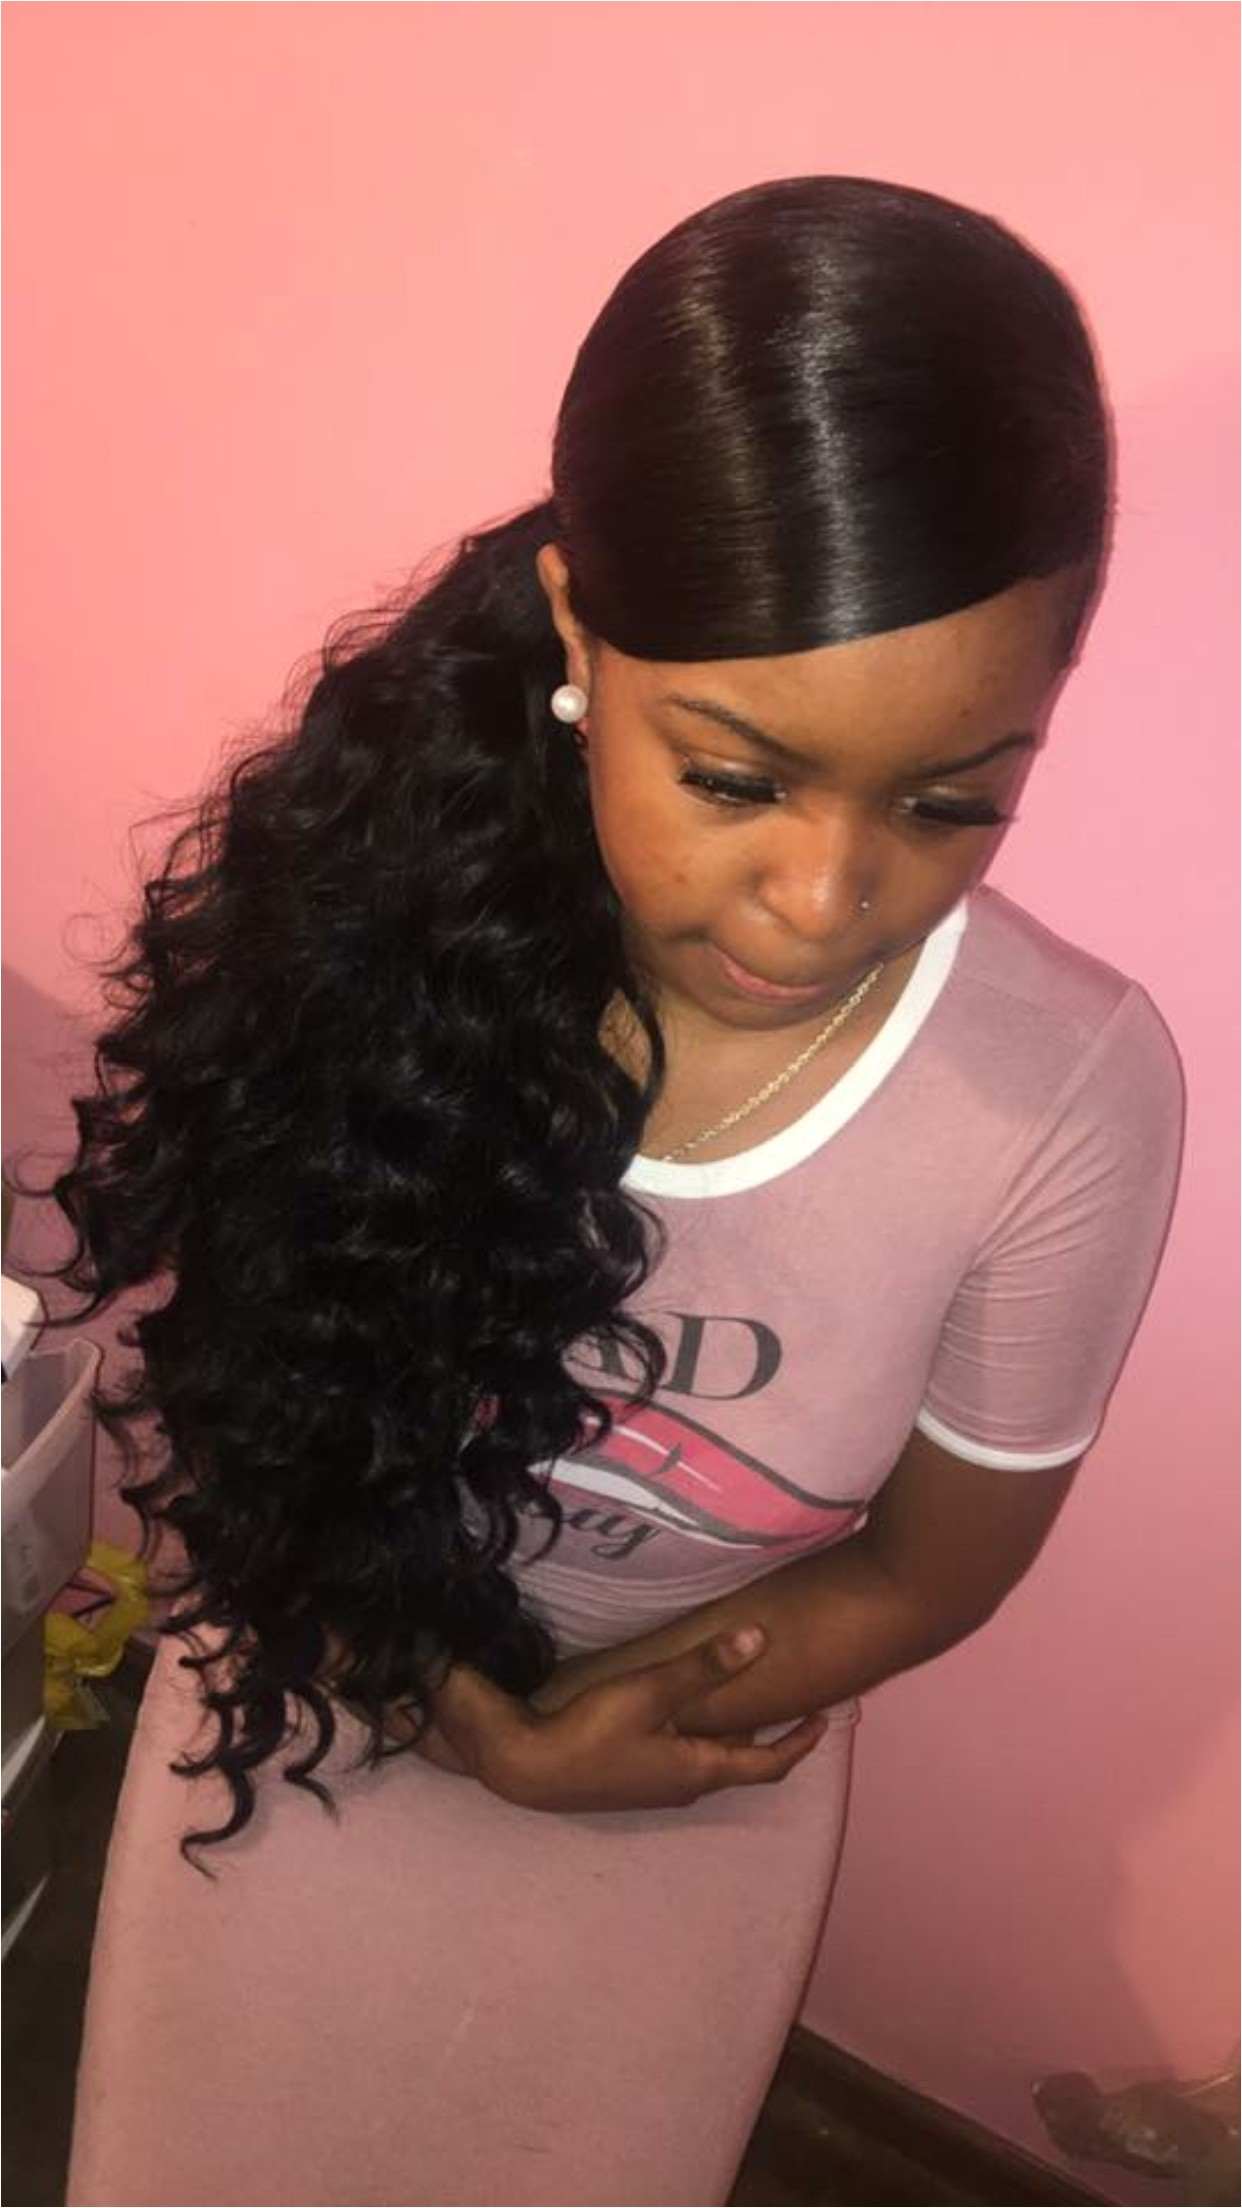 French Braids Hairstyles for African American Braided Hairstyles Black Hair New Fresh Braided Hairstyles In A